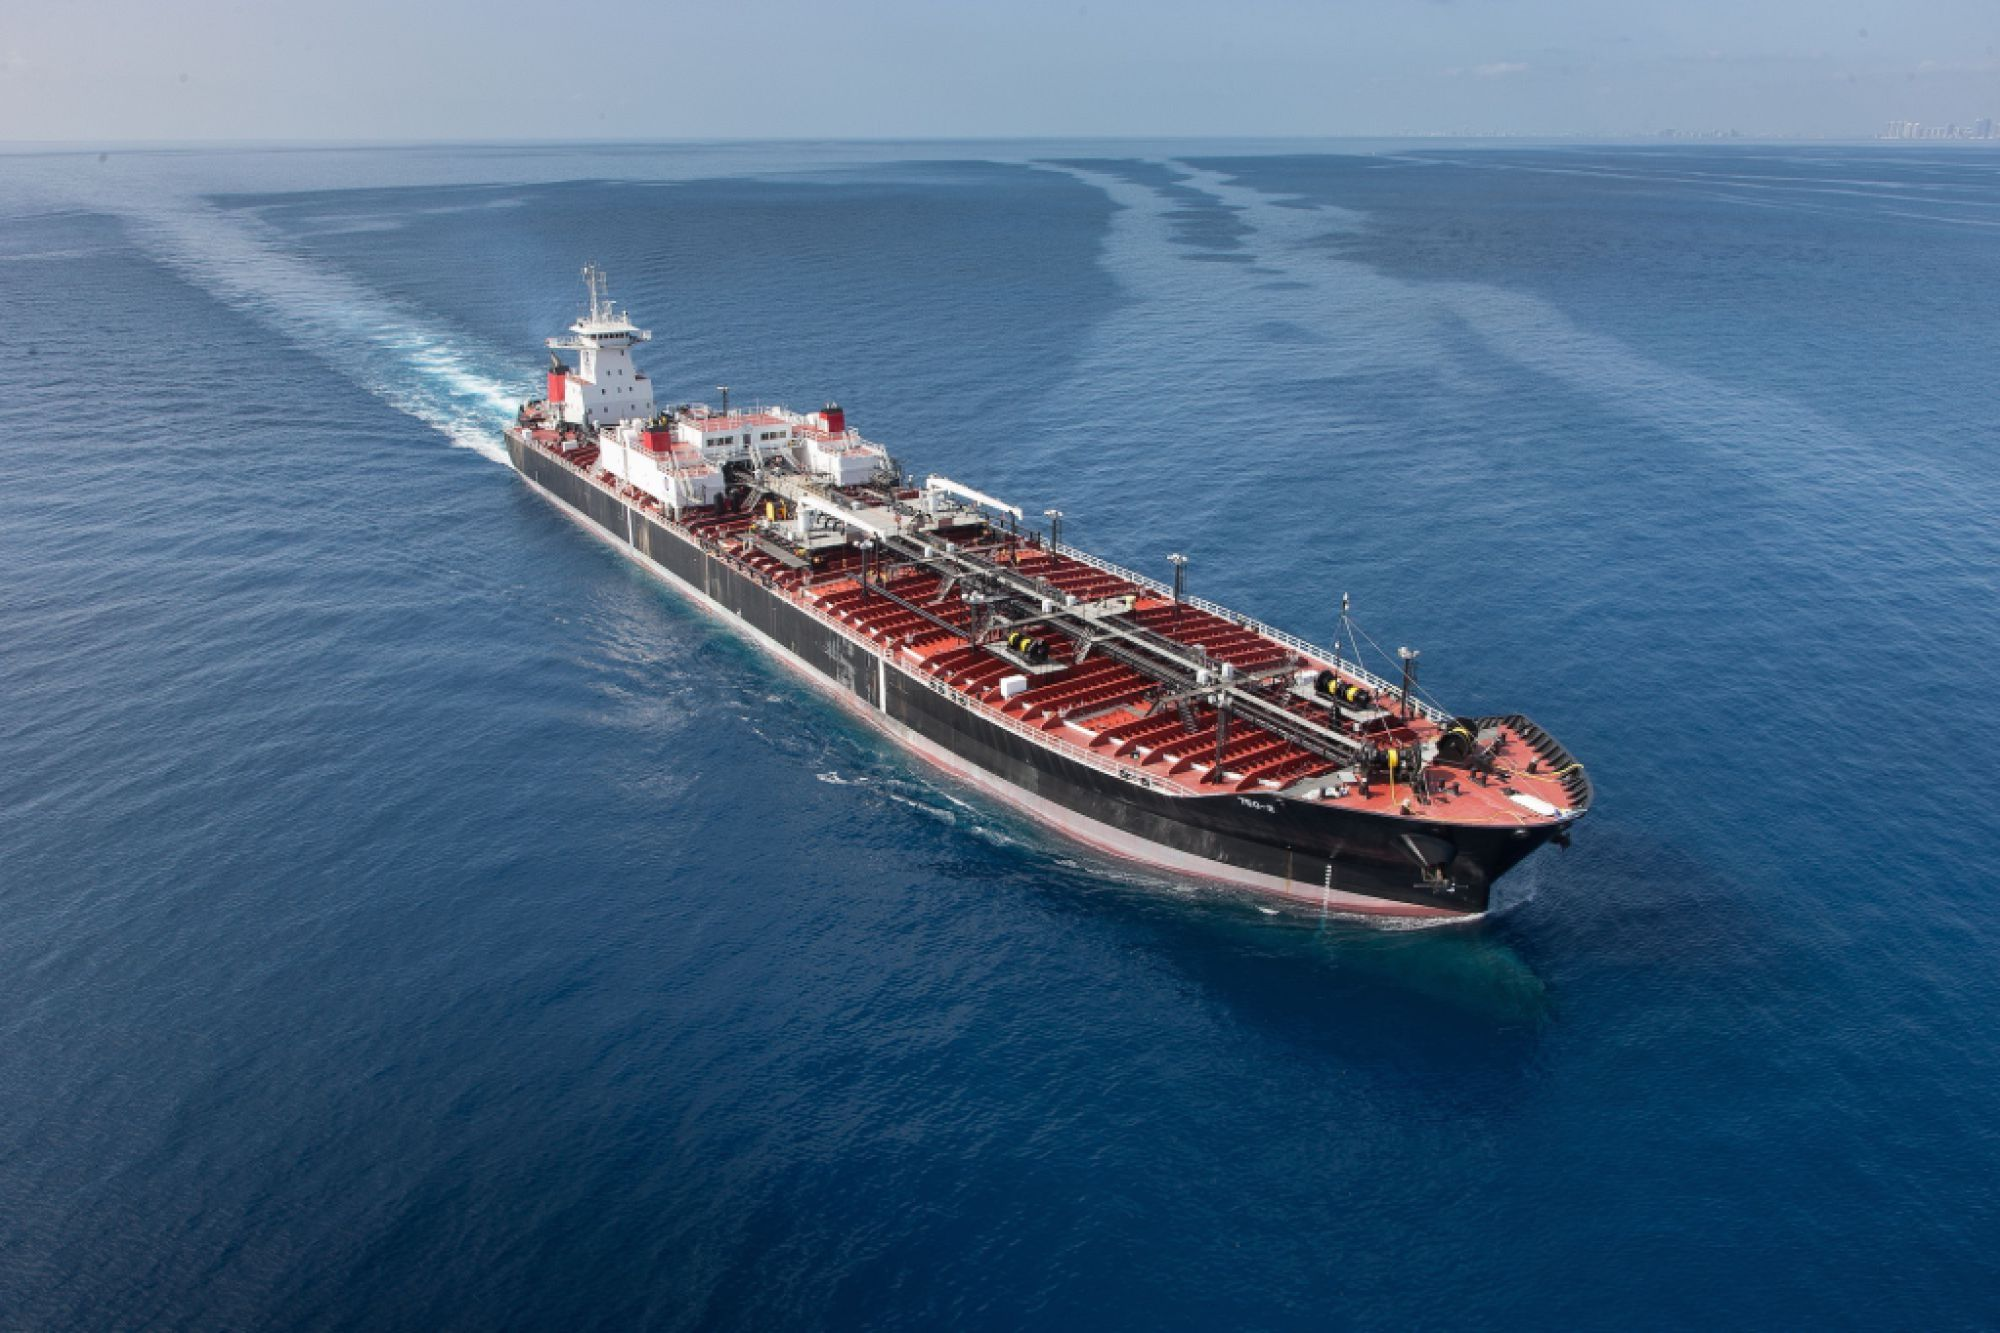 crowley shipping safe and reliable operations